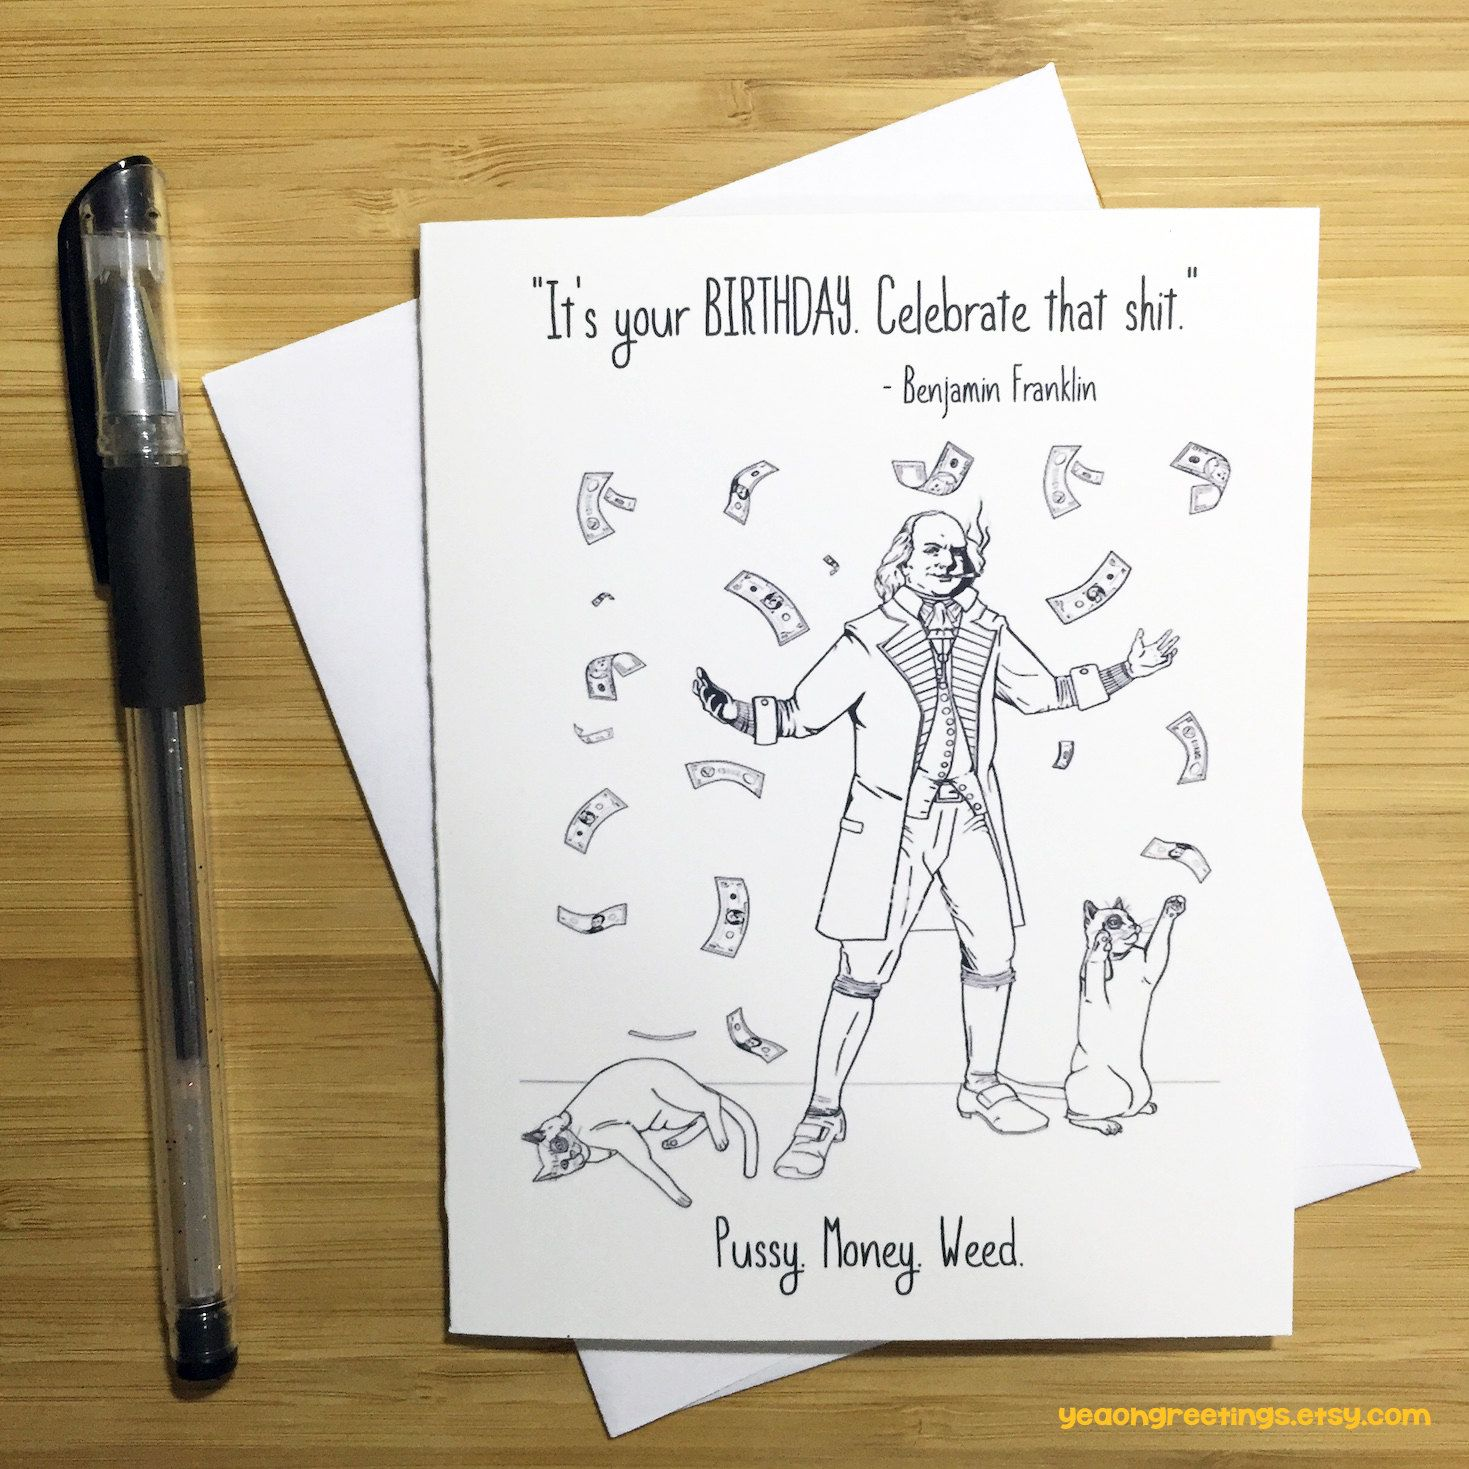 Happy Birthday Card Benjamin Franklin Weed Card by YeaOhGreetings